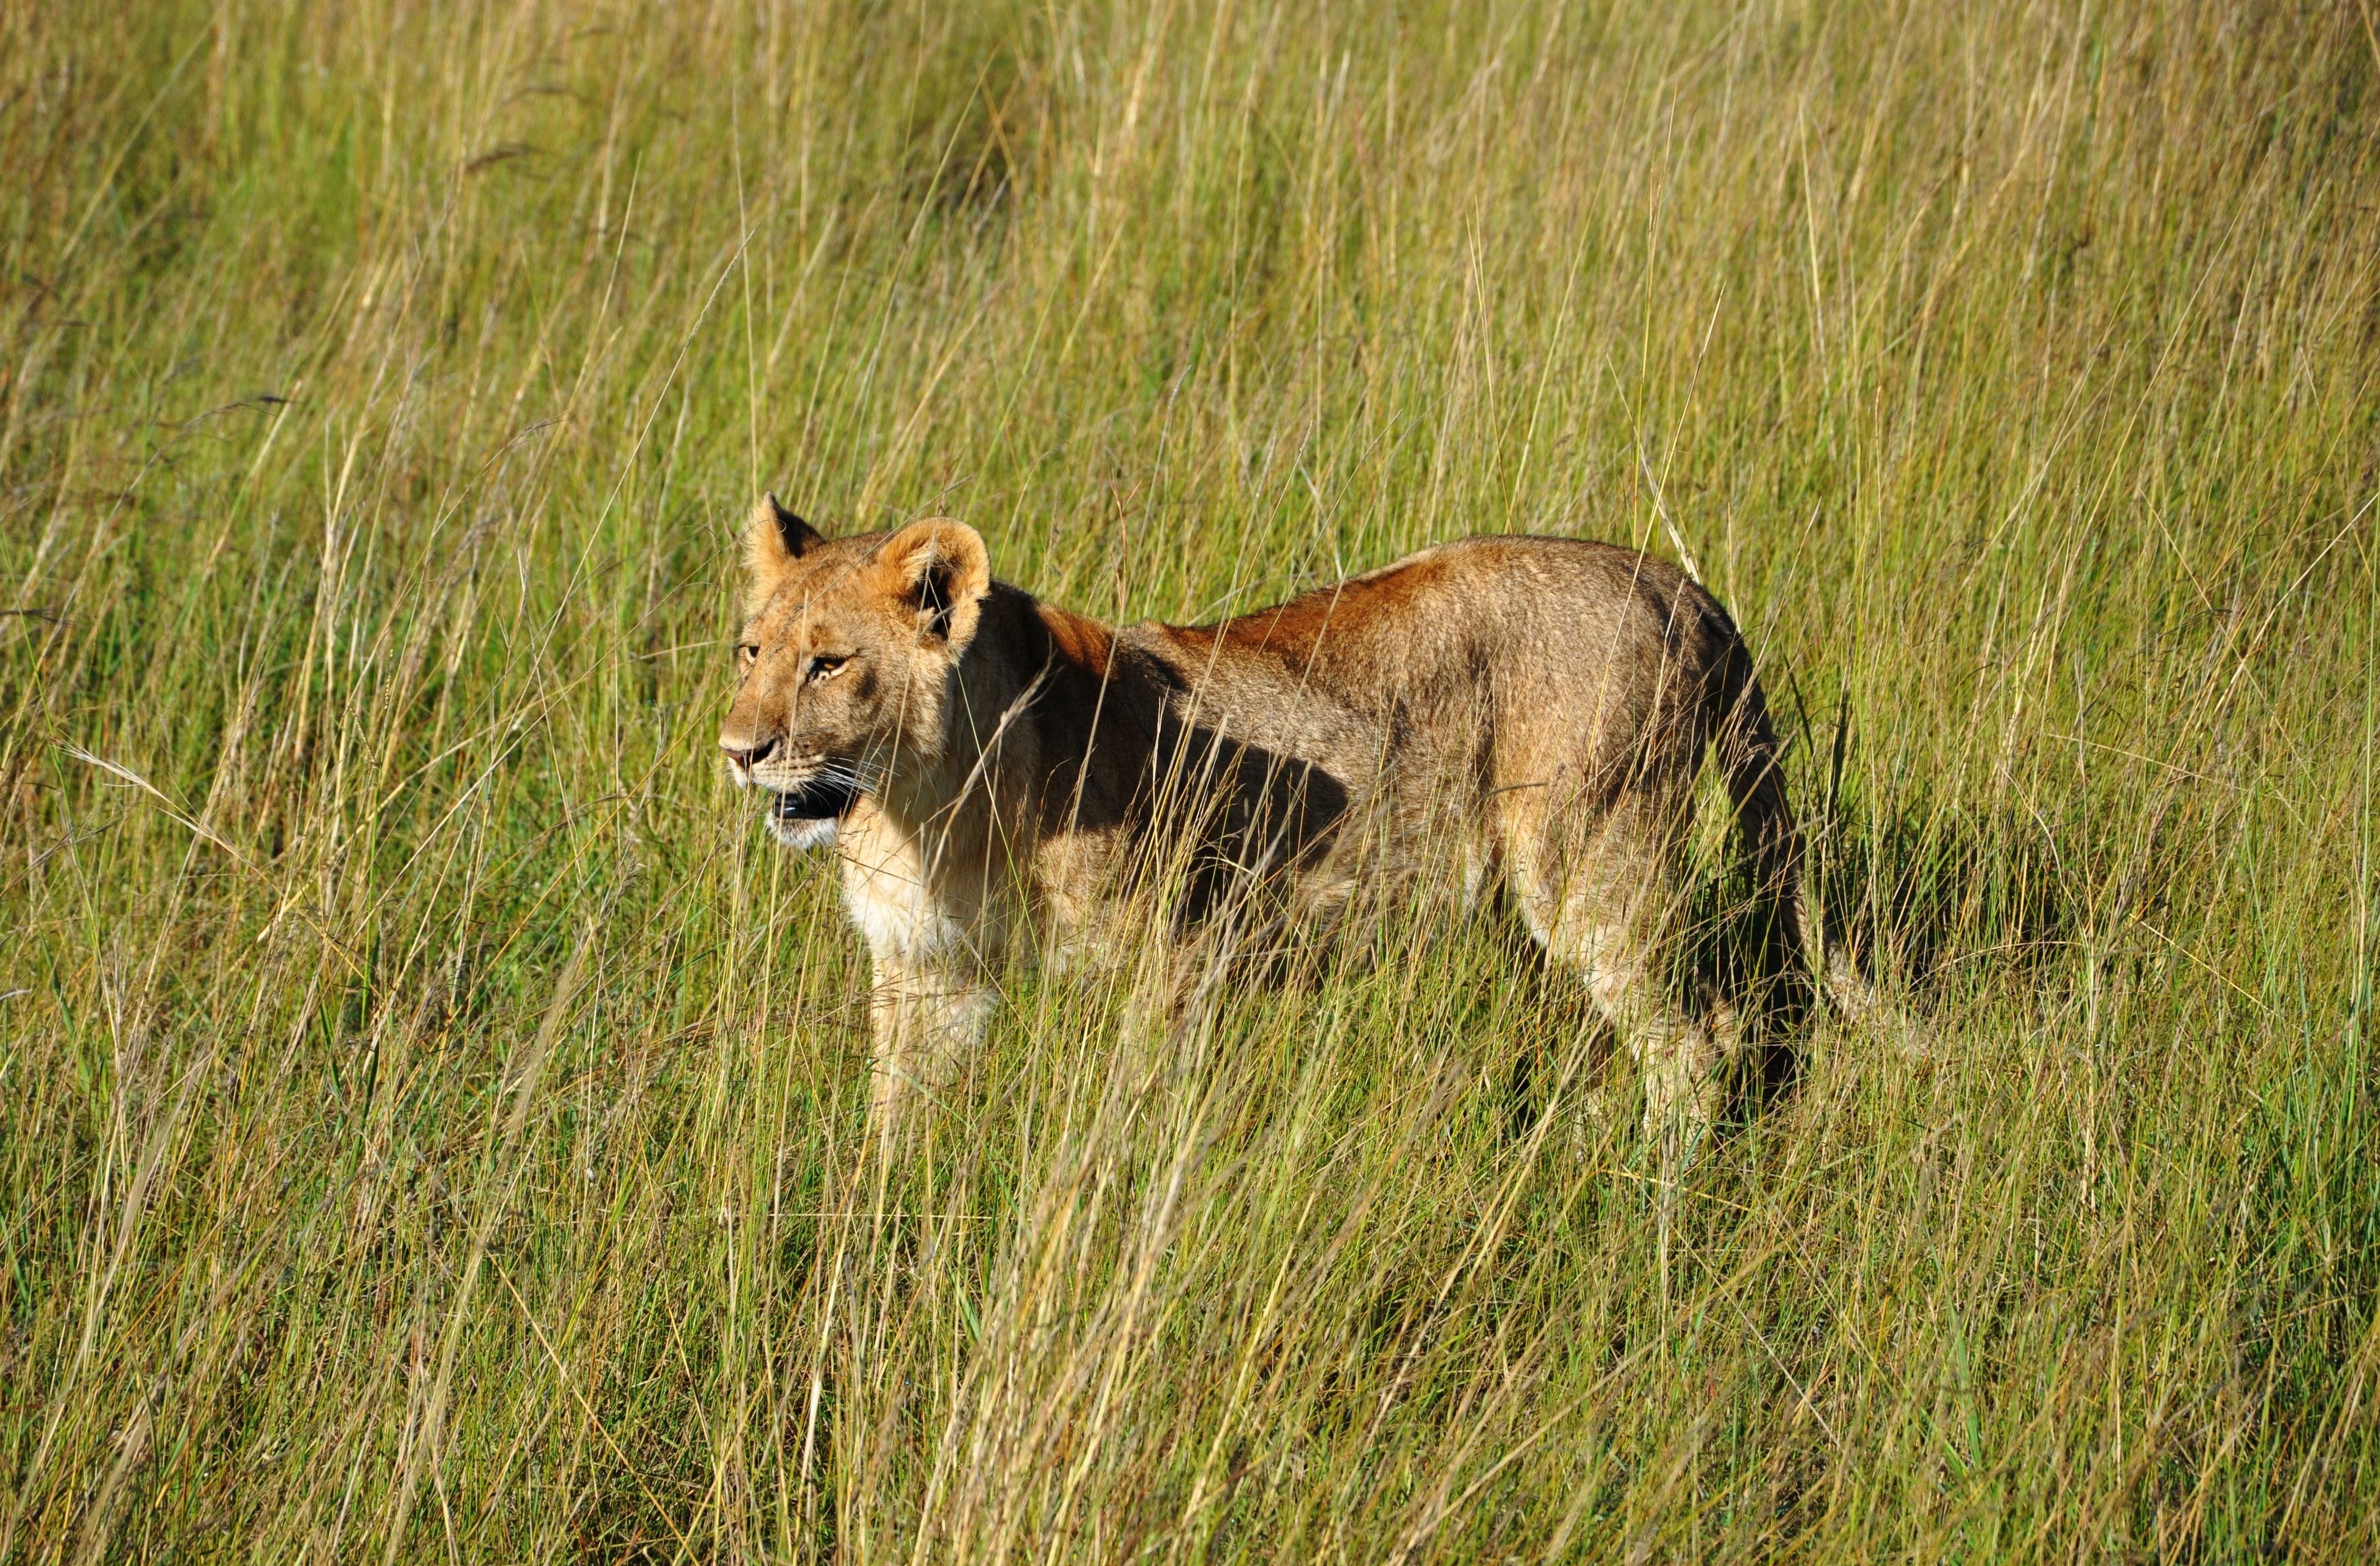 lioness on grass field